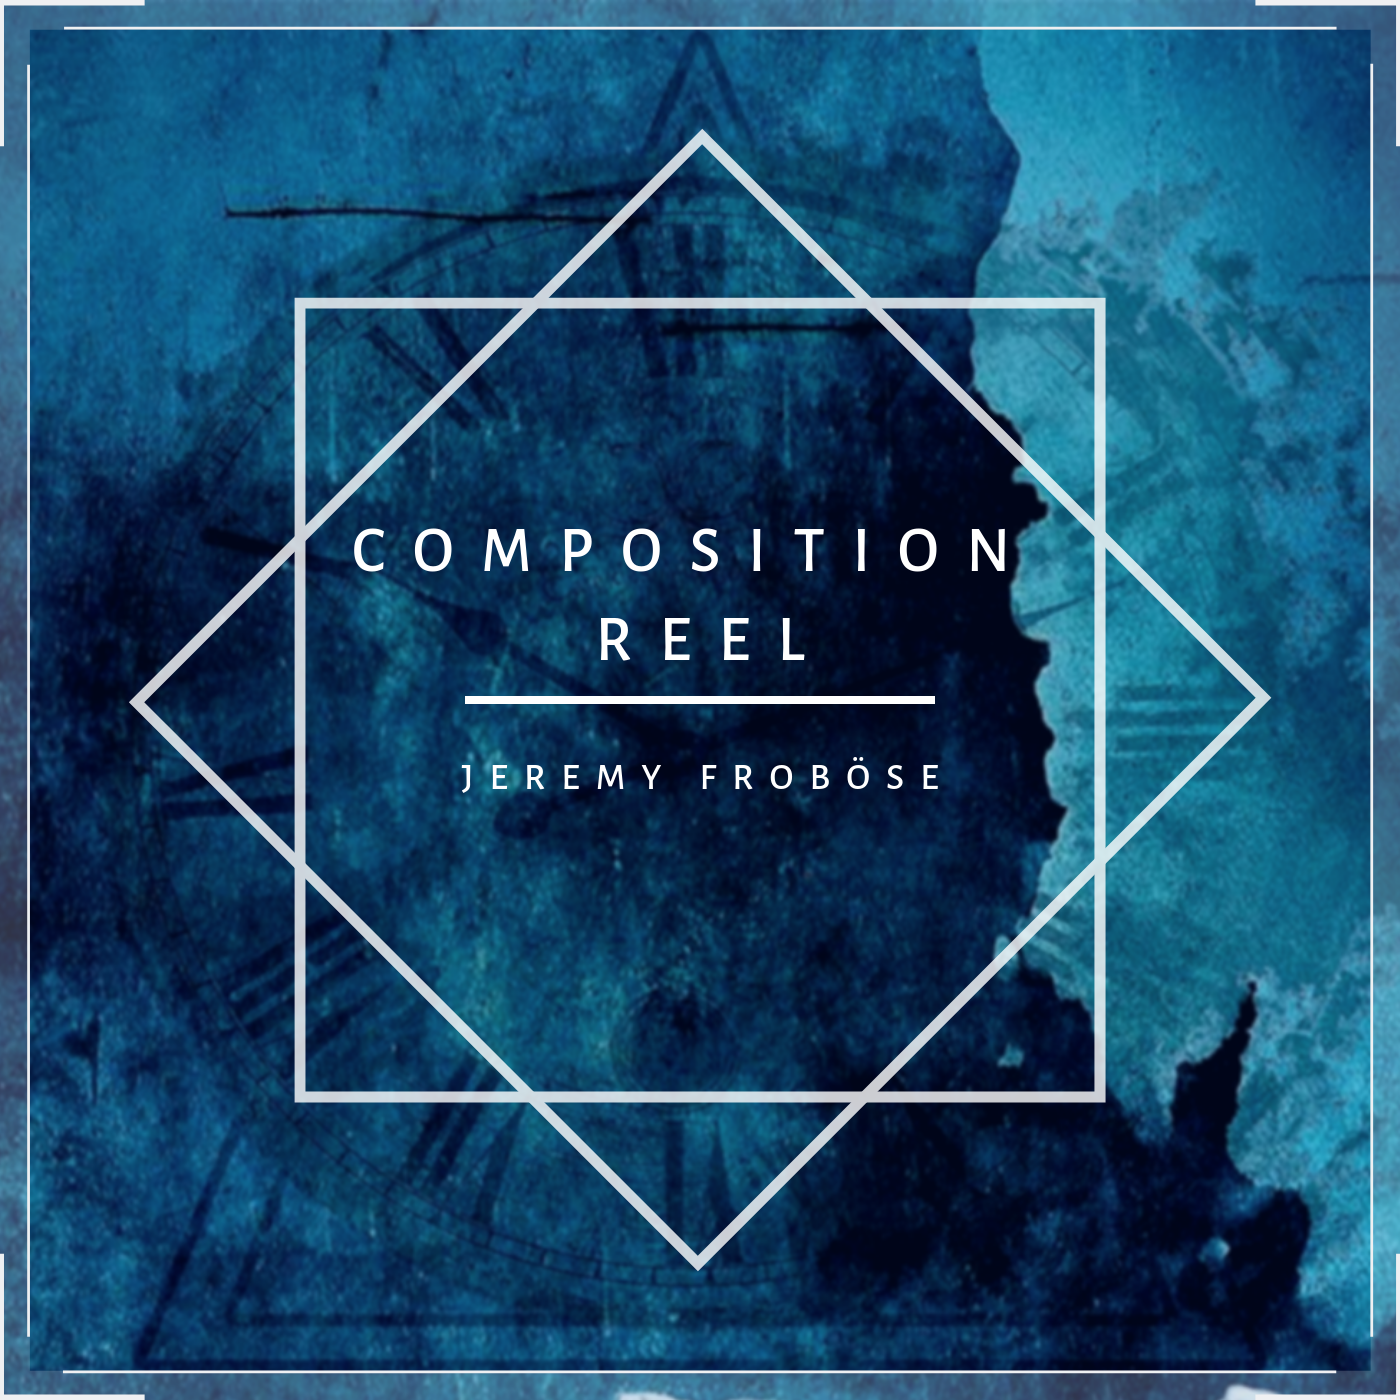 Thanks for finding your way to my composition reel! You can find here free to use, non-commercial works of mine as well as Themes I wrote for Media Projects, including Films & Games.  If you like any free track (marked by the blue cover), don't hesitate to drop me an Email - I'm excited to get in touch with you! Have fun listening, I hope you'll enjoy.